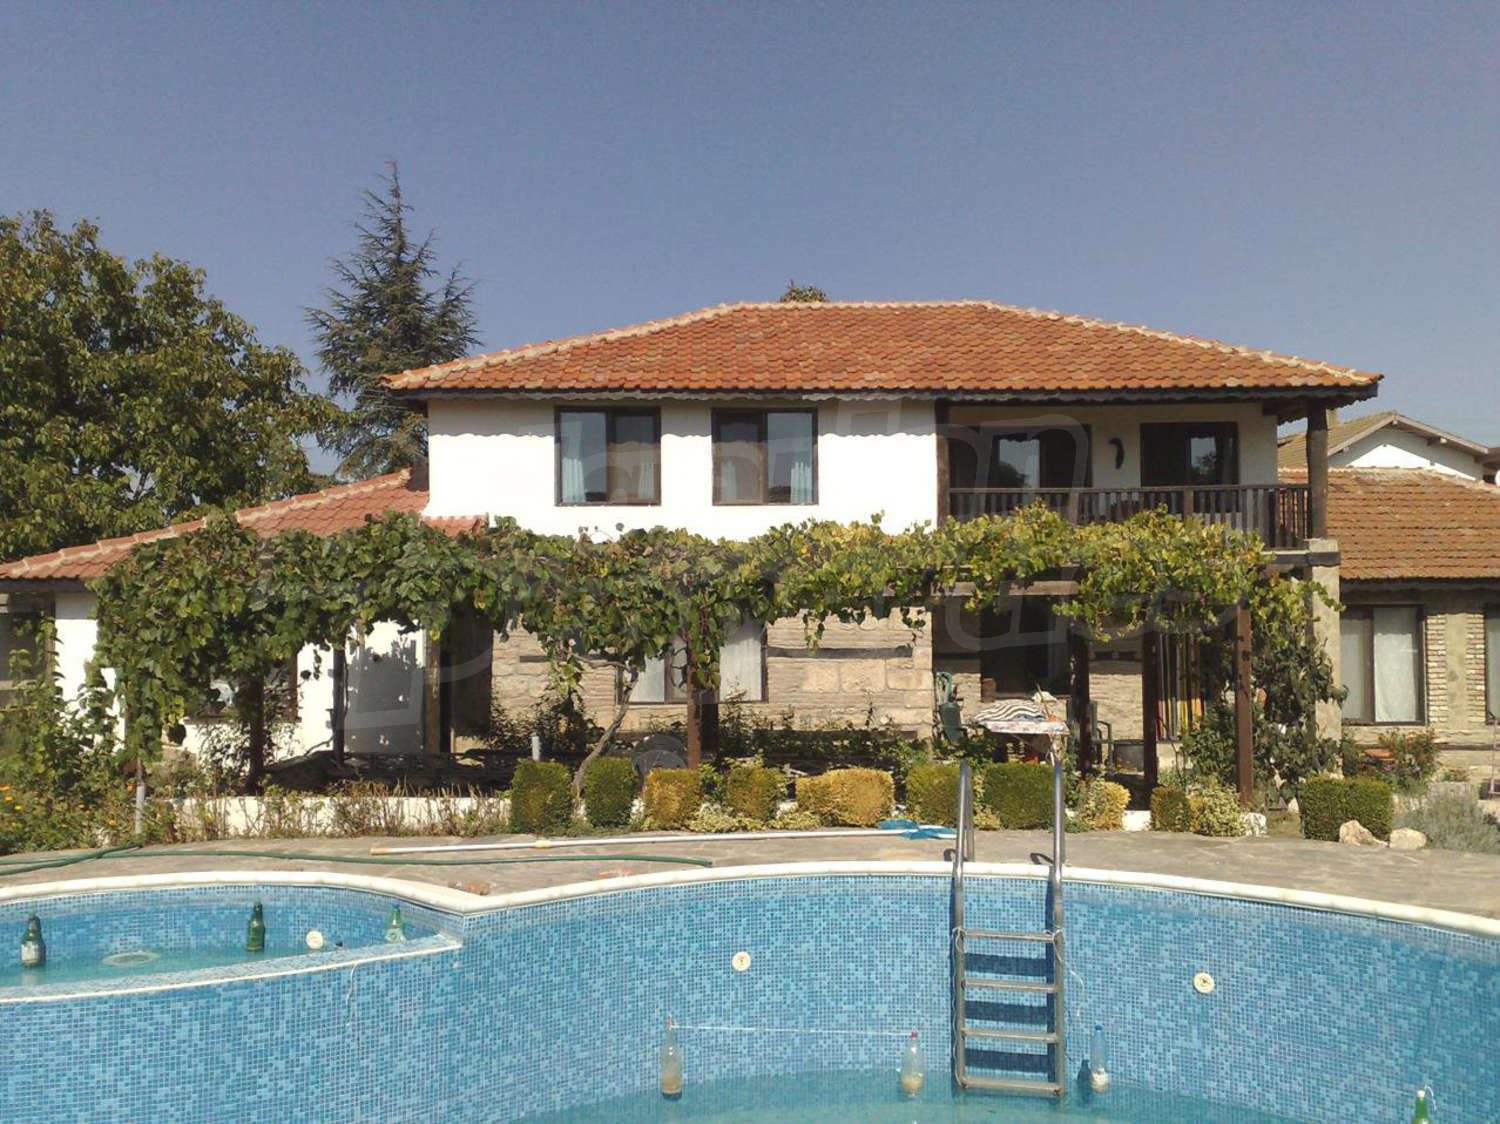 House For Sale Near Varna Varna Bulgaria Big House With Swimming Pool Very Close To Varna